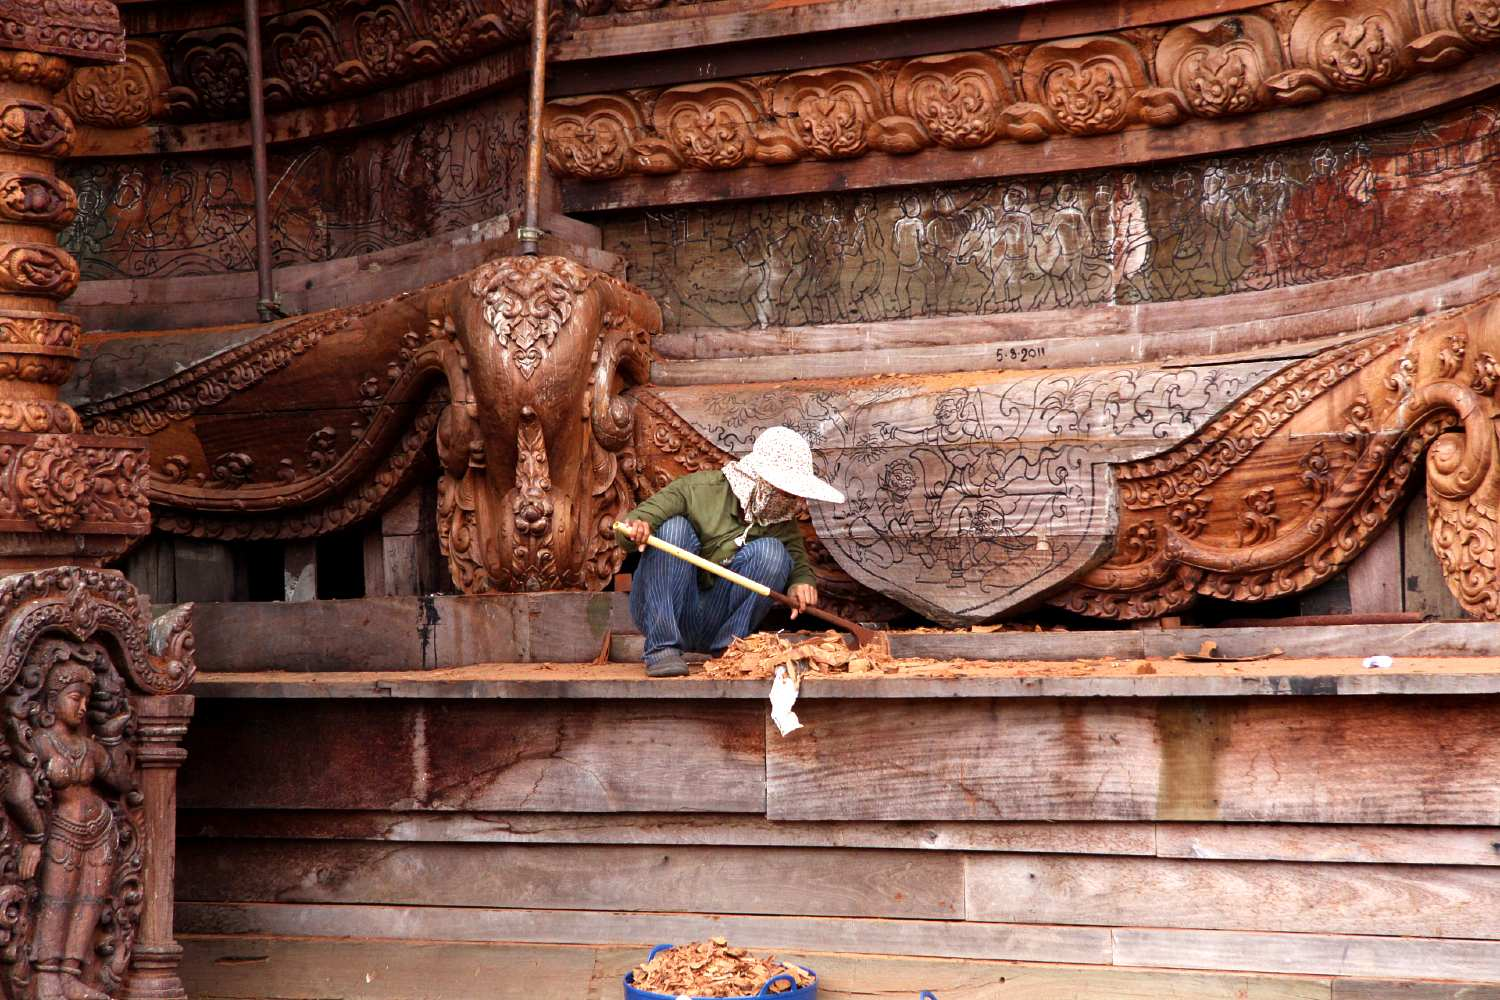 Woodworker at work in The Sanctuary Of Truth Pattaya